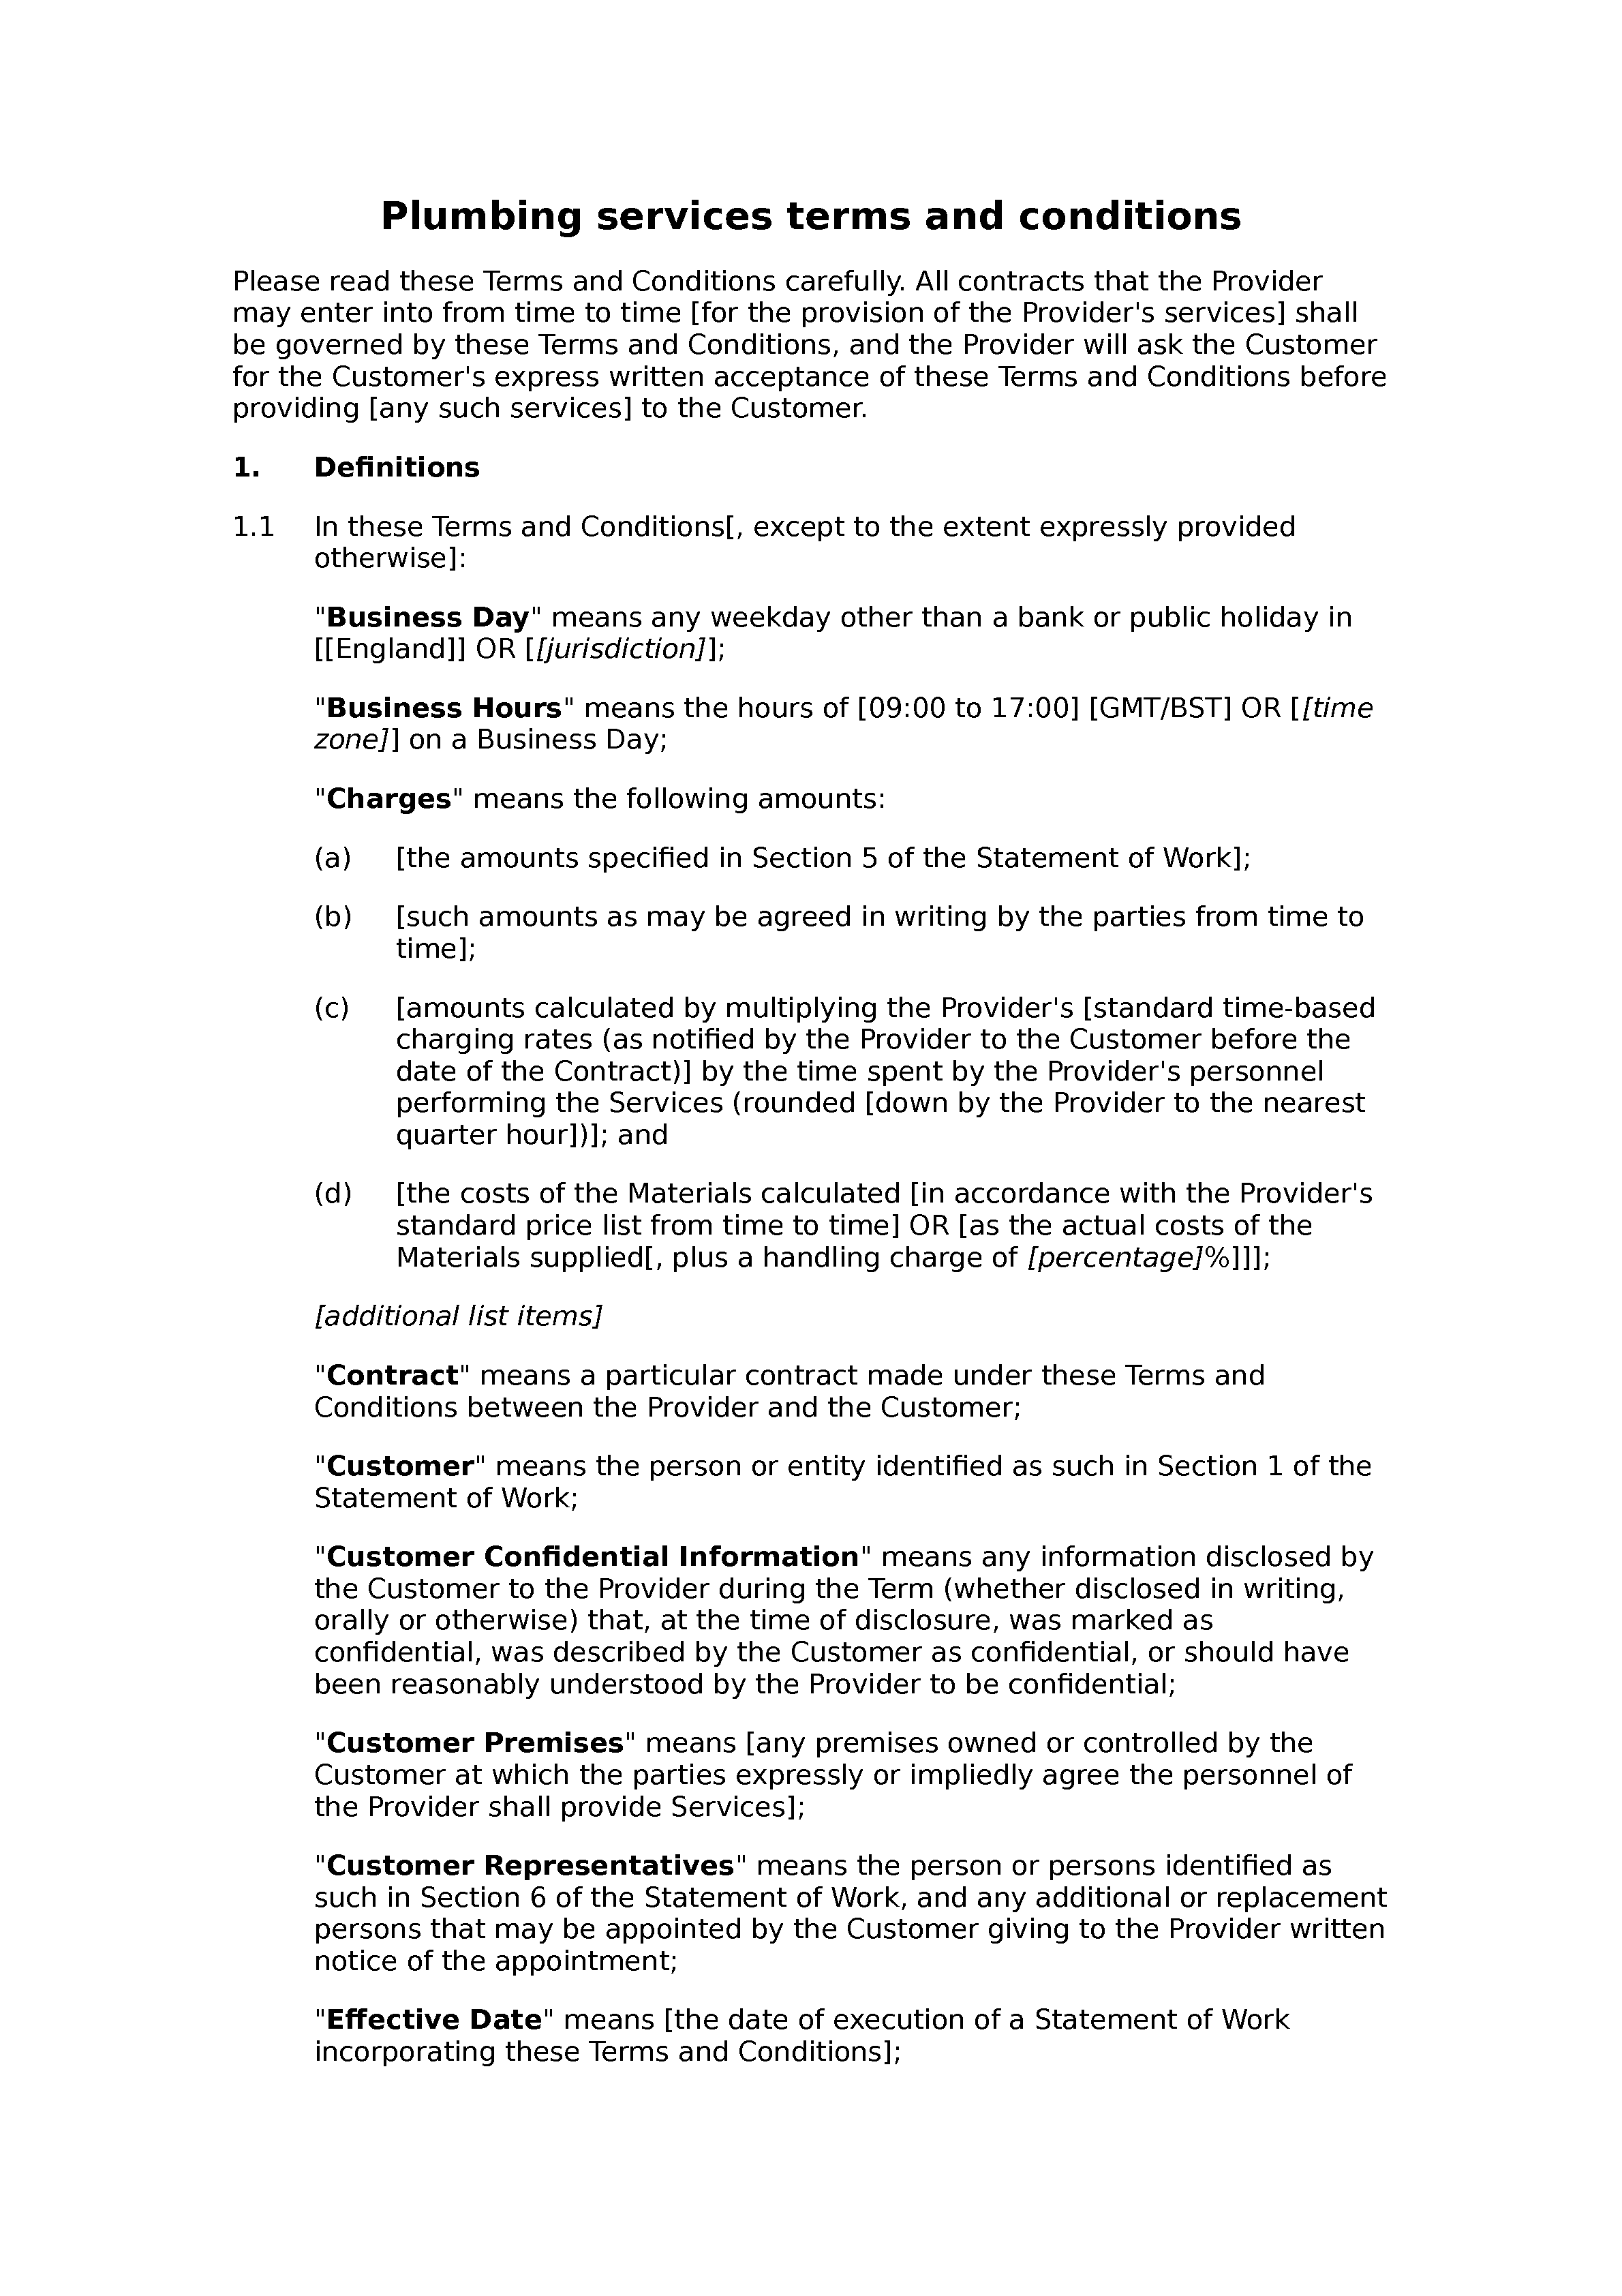 term and condition template - plumbing services terms and conditions docular